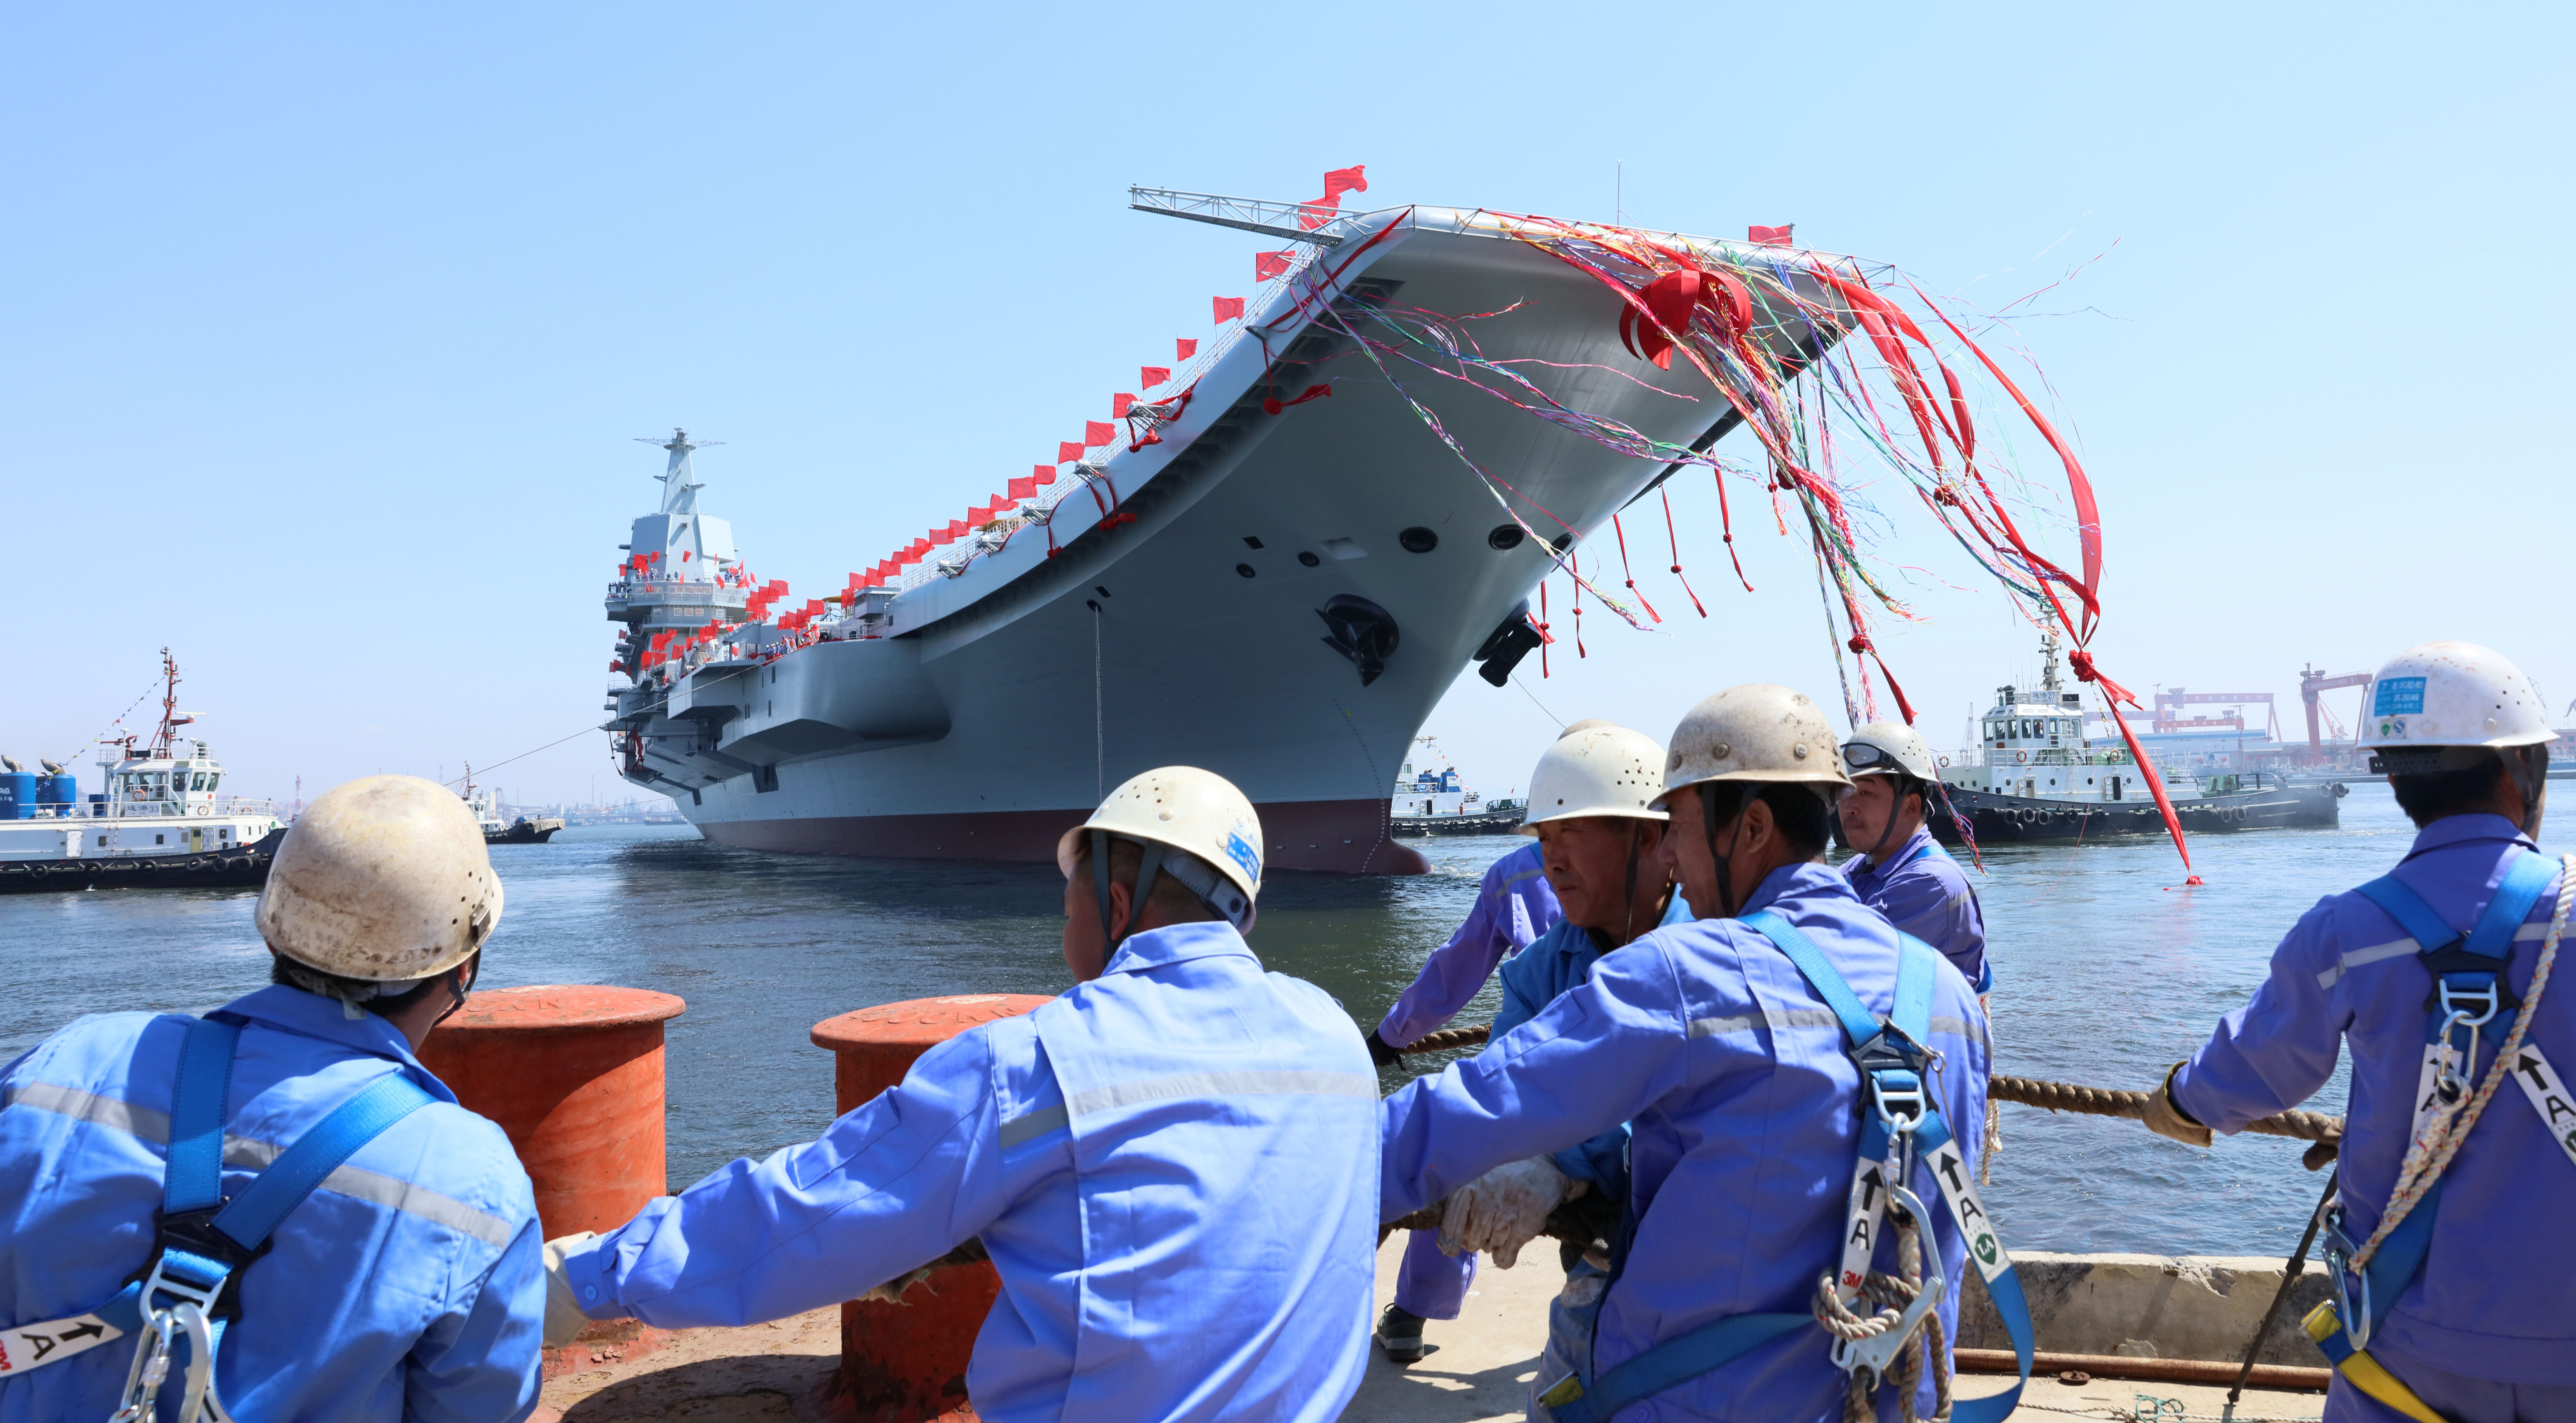 China's first domestically built aircraft carrier is seen during its launching ceremony in Dalian, China April 26, 2017.